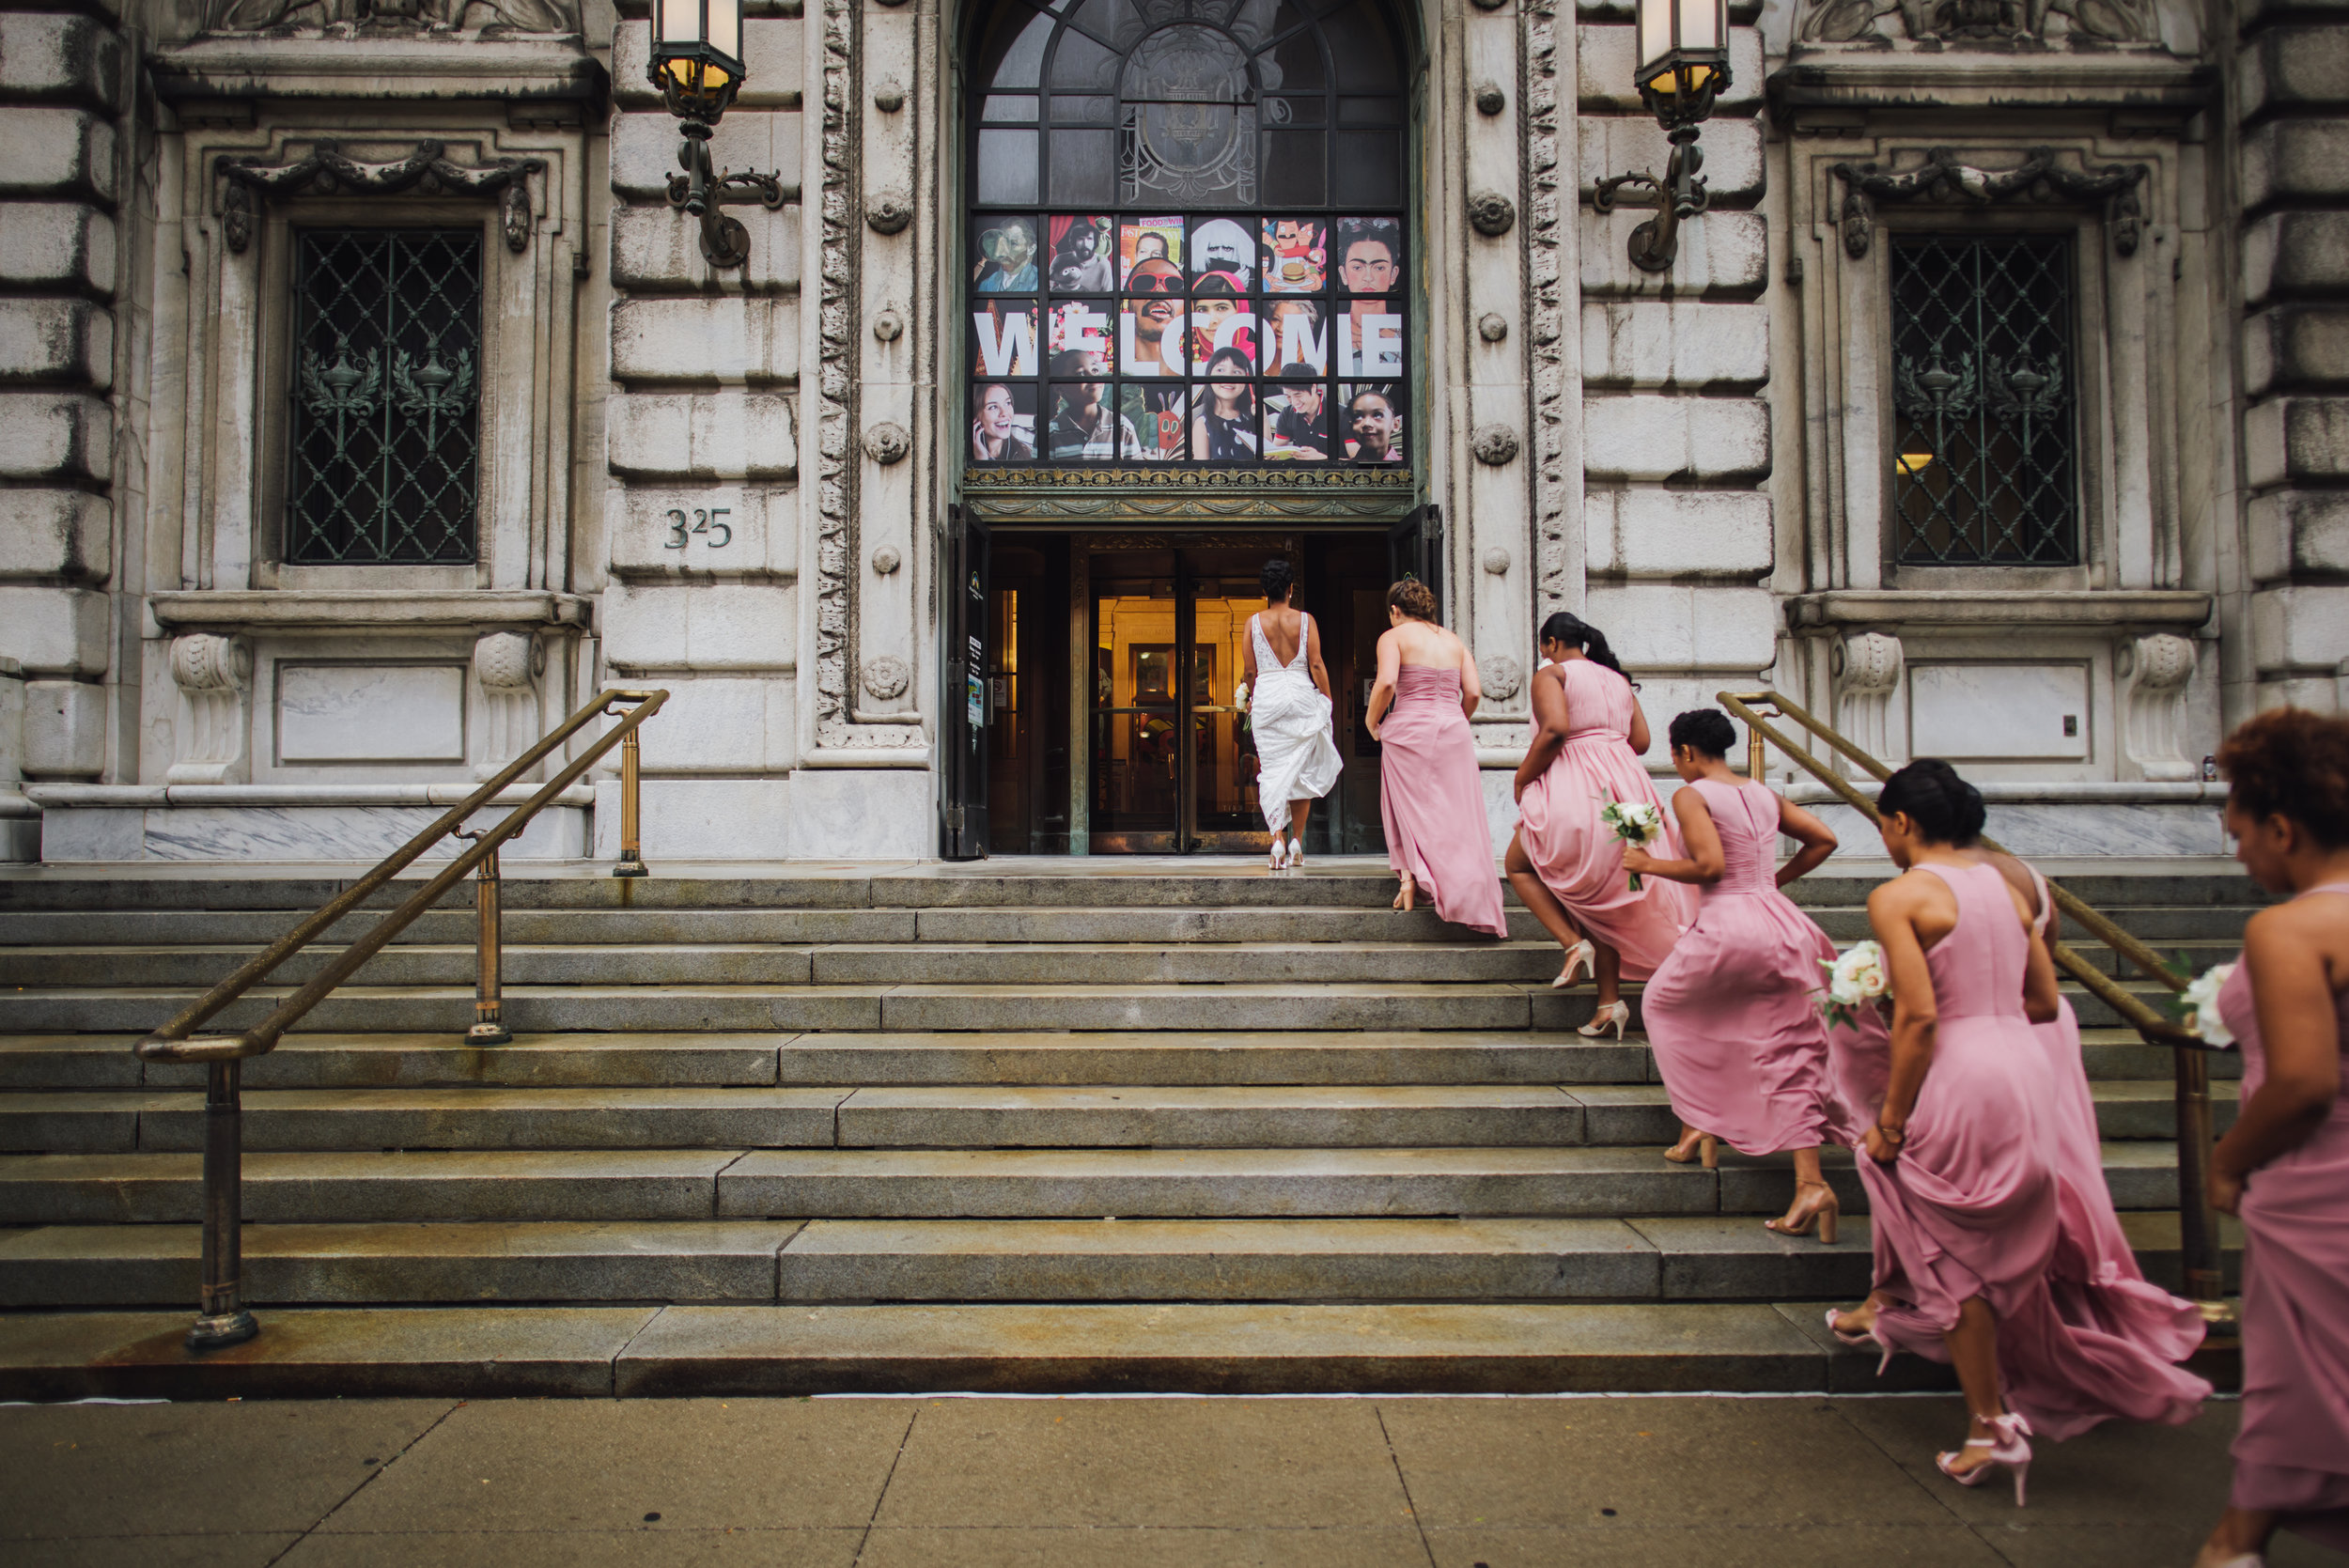 DANIELLE & BRANDON WEDDING - HEDGE ART GALLERY - NYC INTIMATE WEDDING PHOTOGRAPHER - CHI-CHI ARI-76.jpg